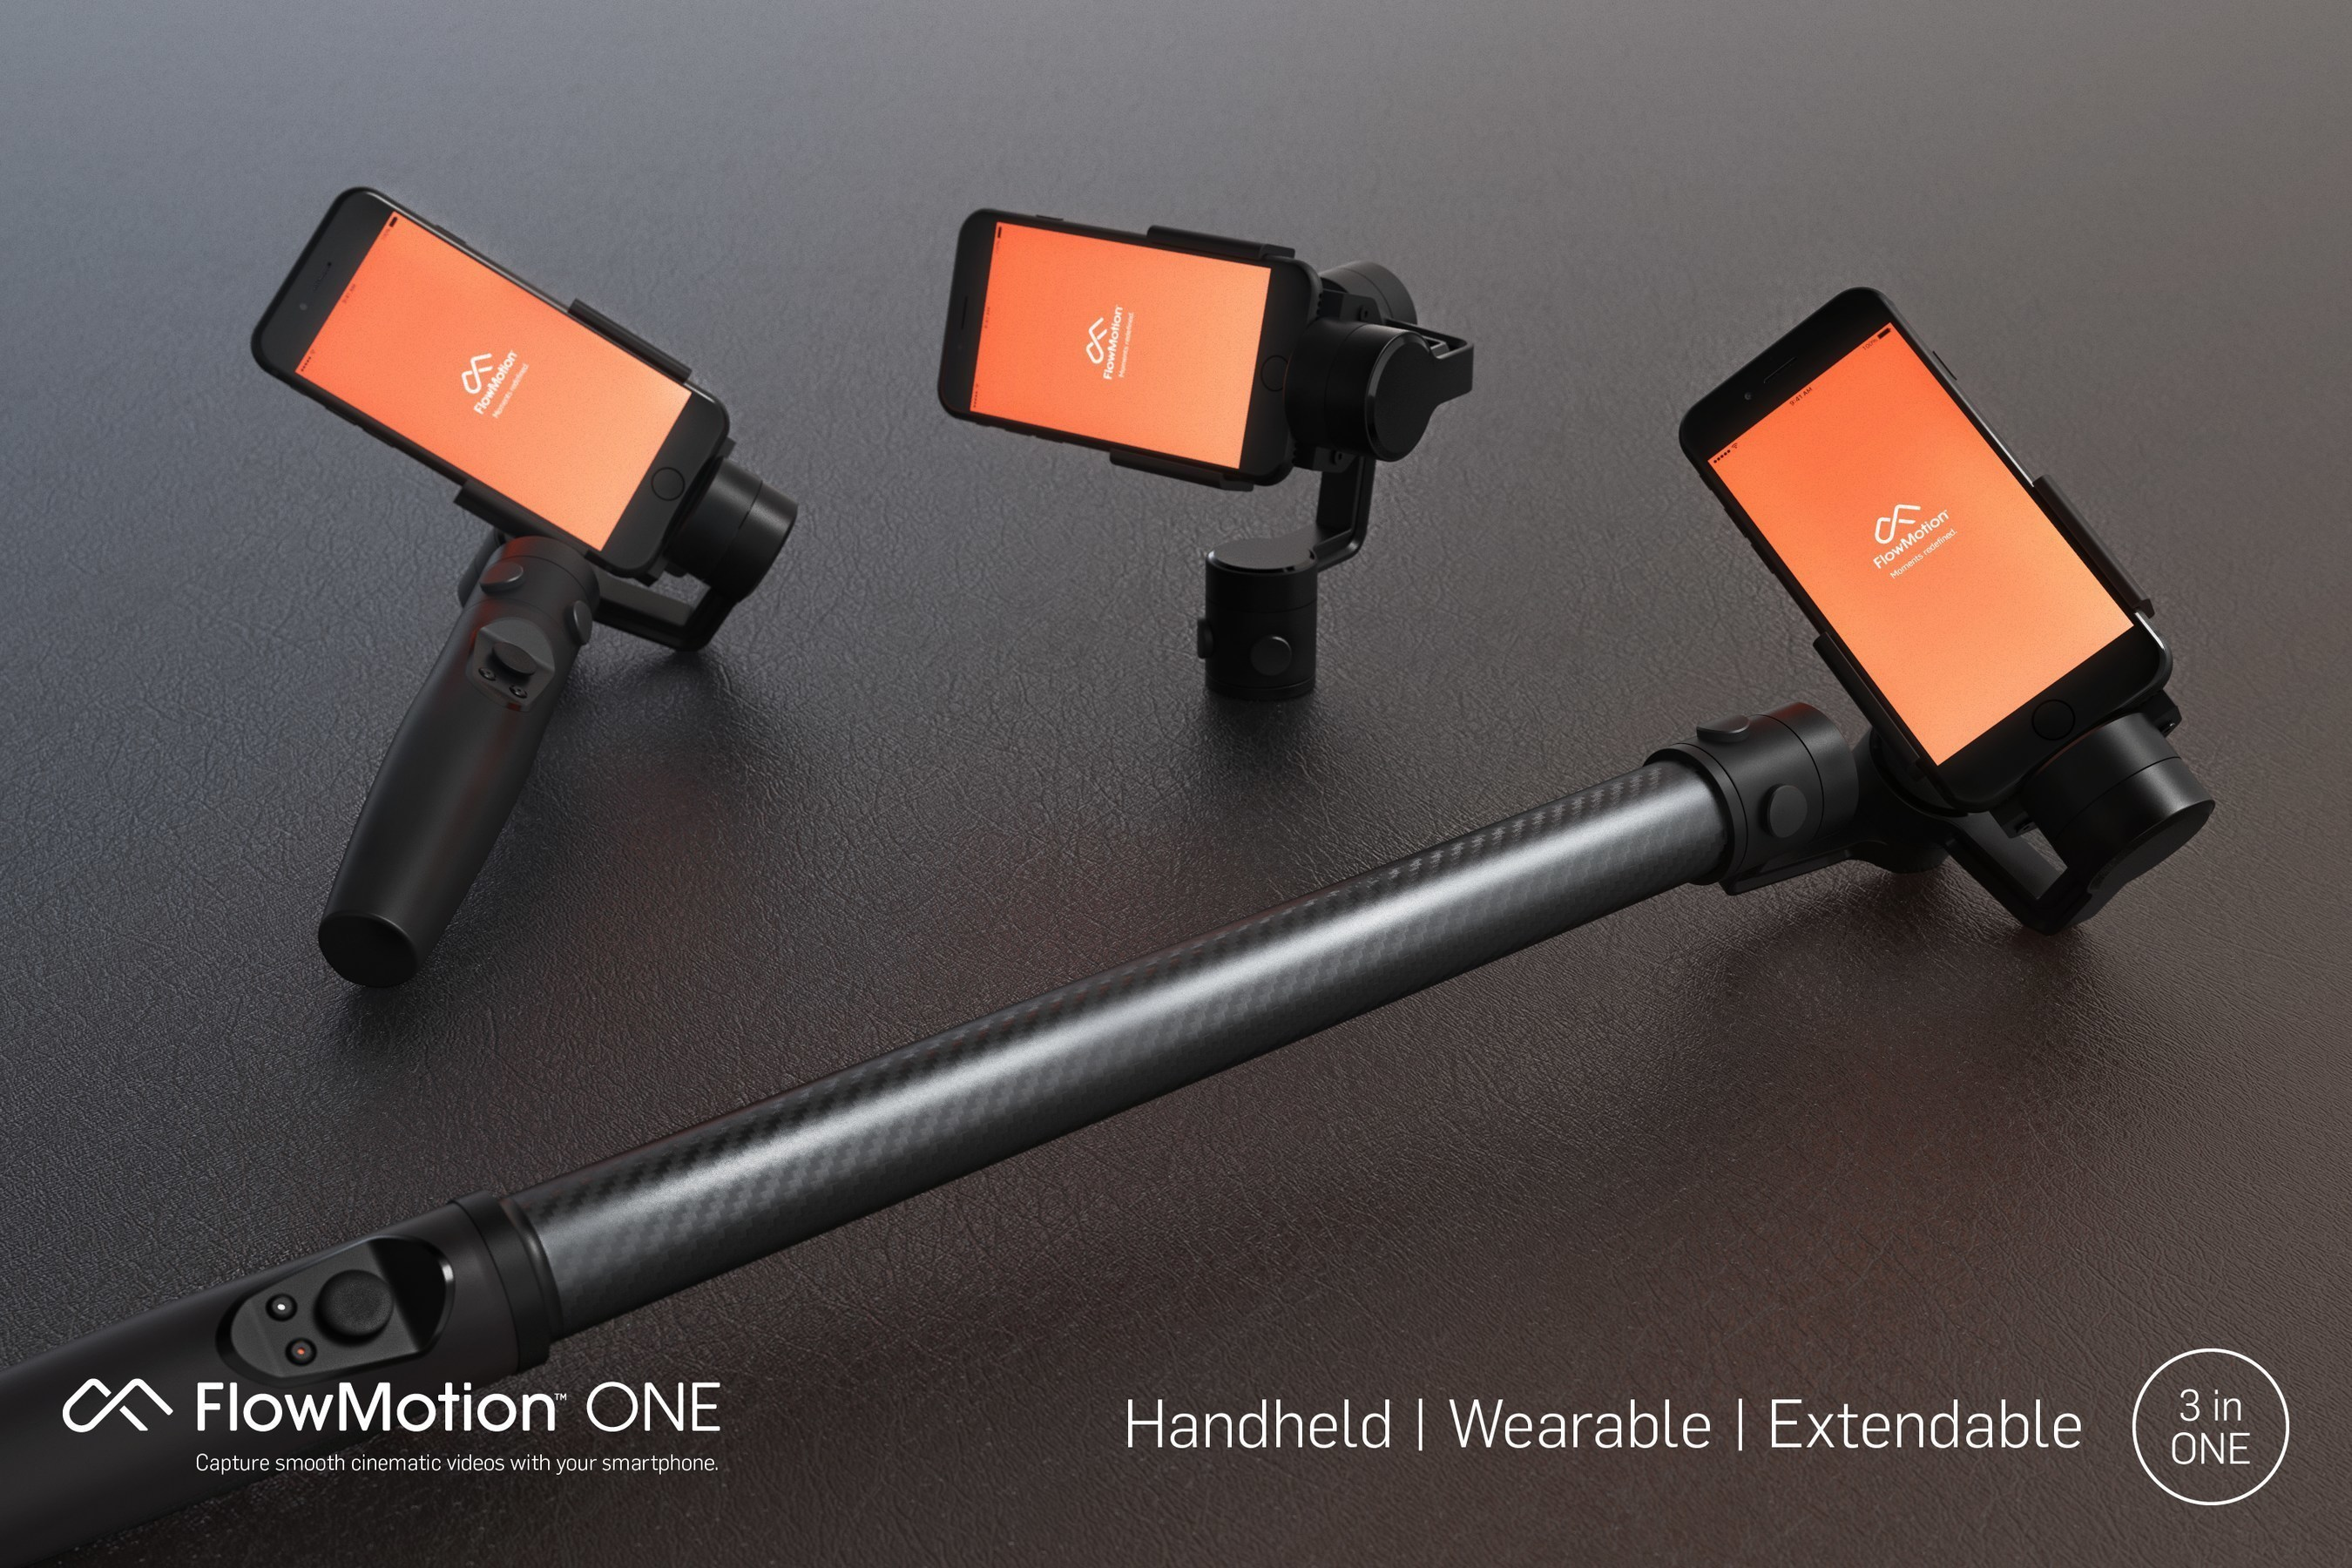 Capture smooth cinematic videos with your smartphone.